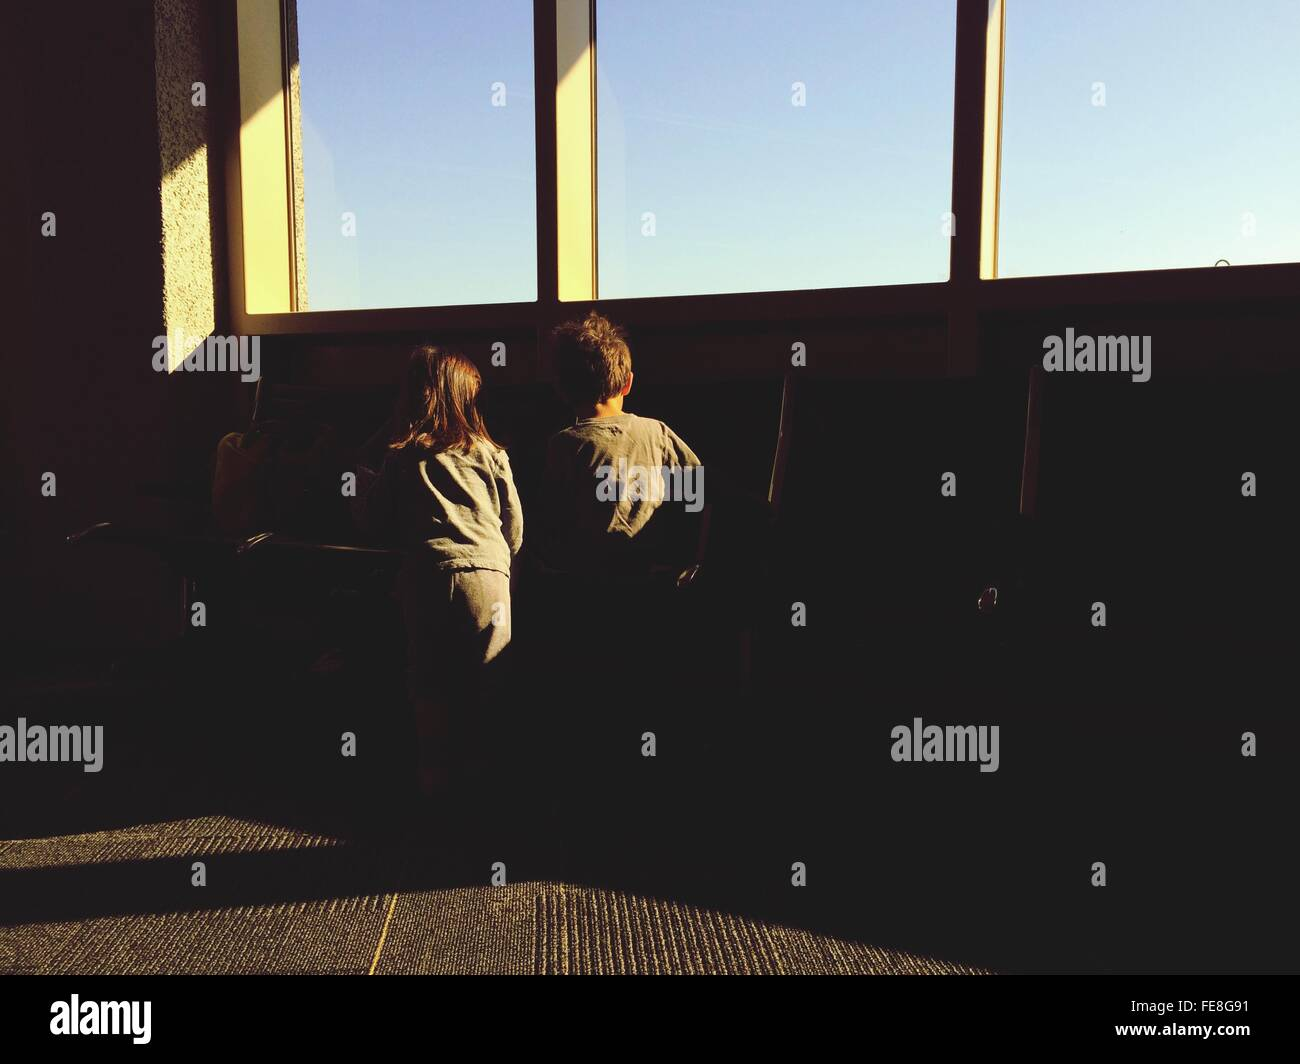 Rear View Of Siblings In San Diego International Airport - Stock Image